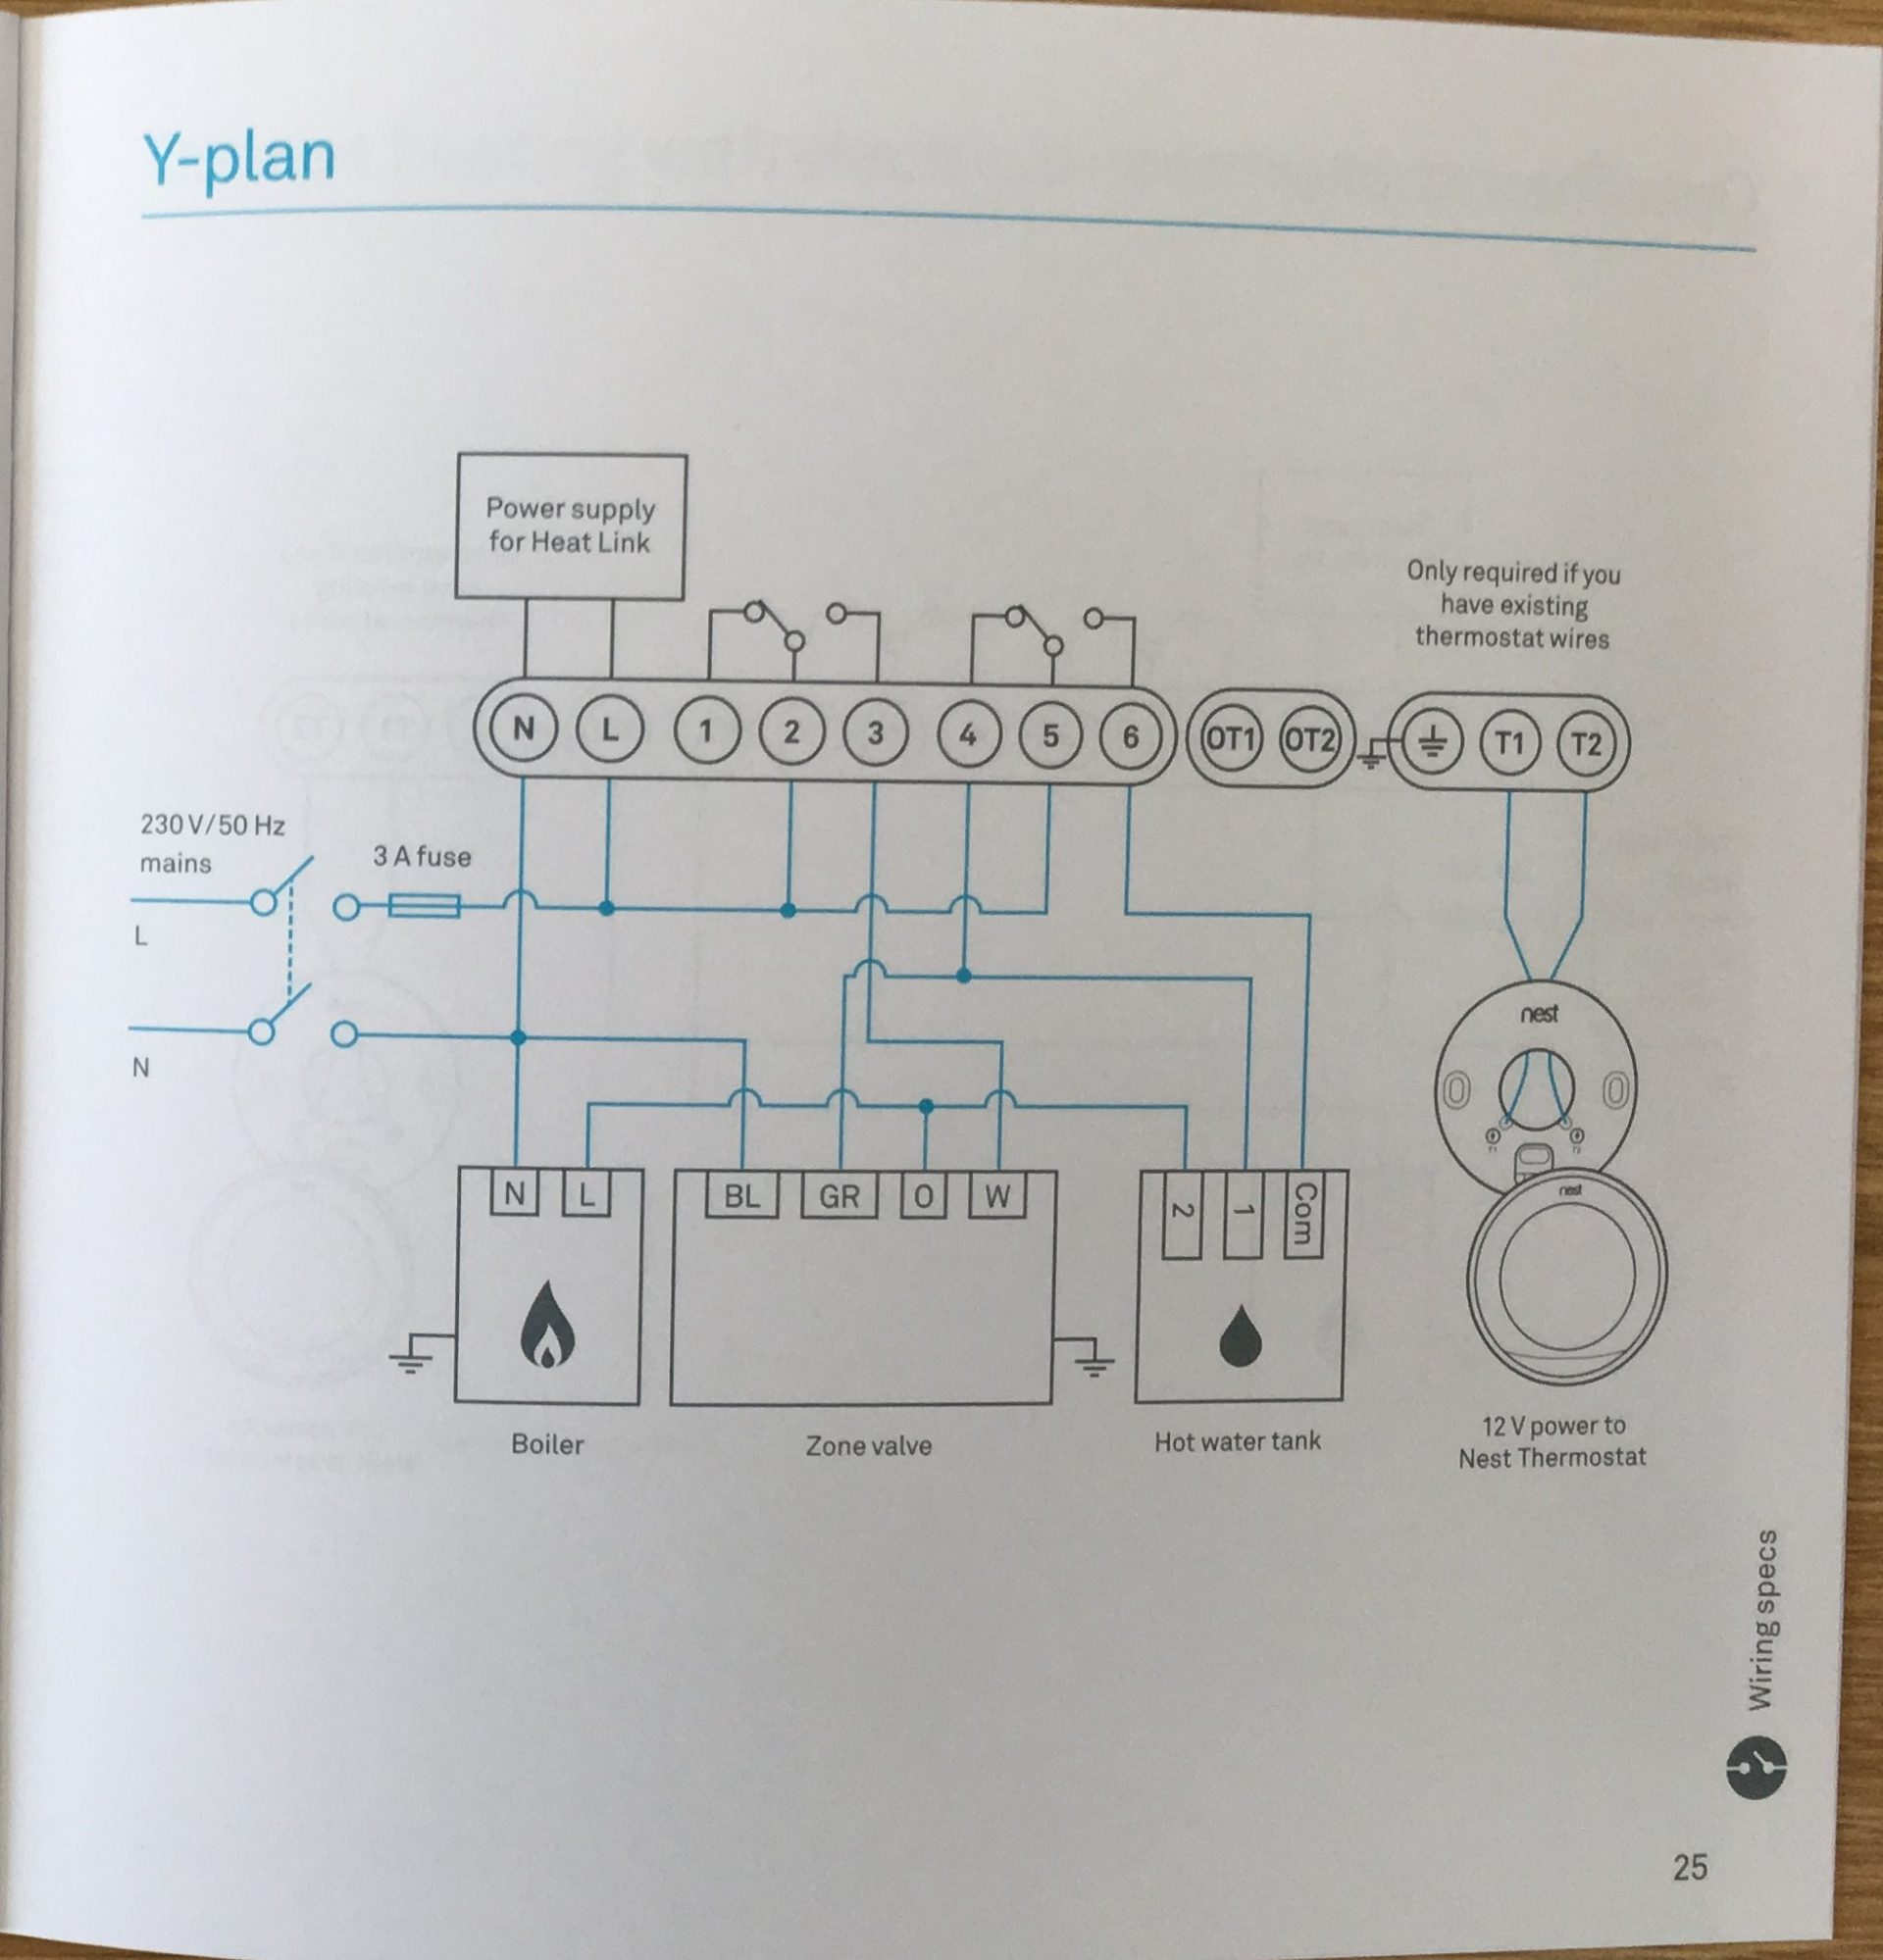 How To Install The Nest Learning Thermostat (3Rd Gen) In A Y-Plan - Google Nest Wiring Diagram